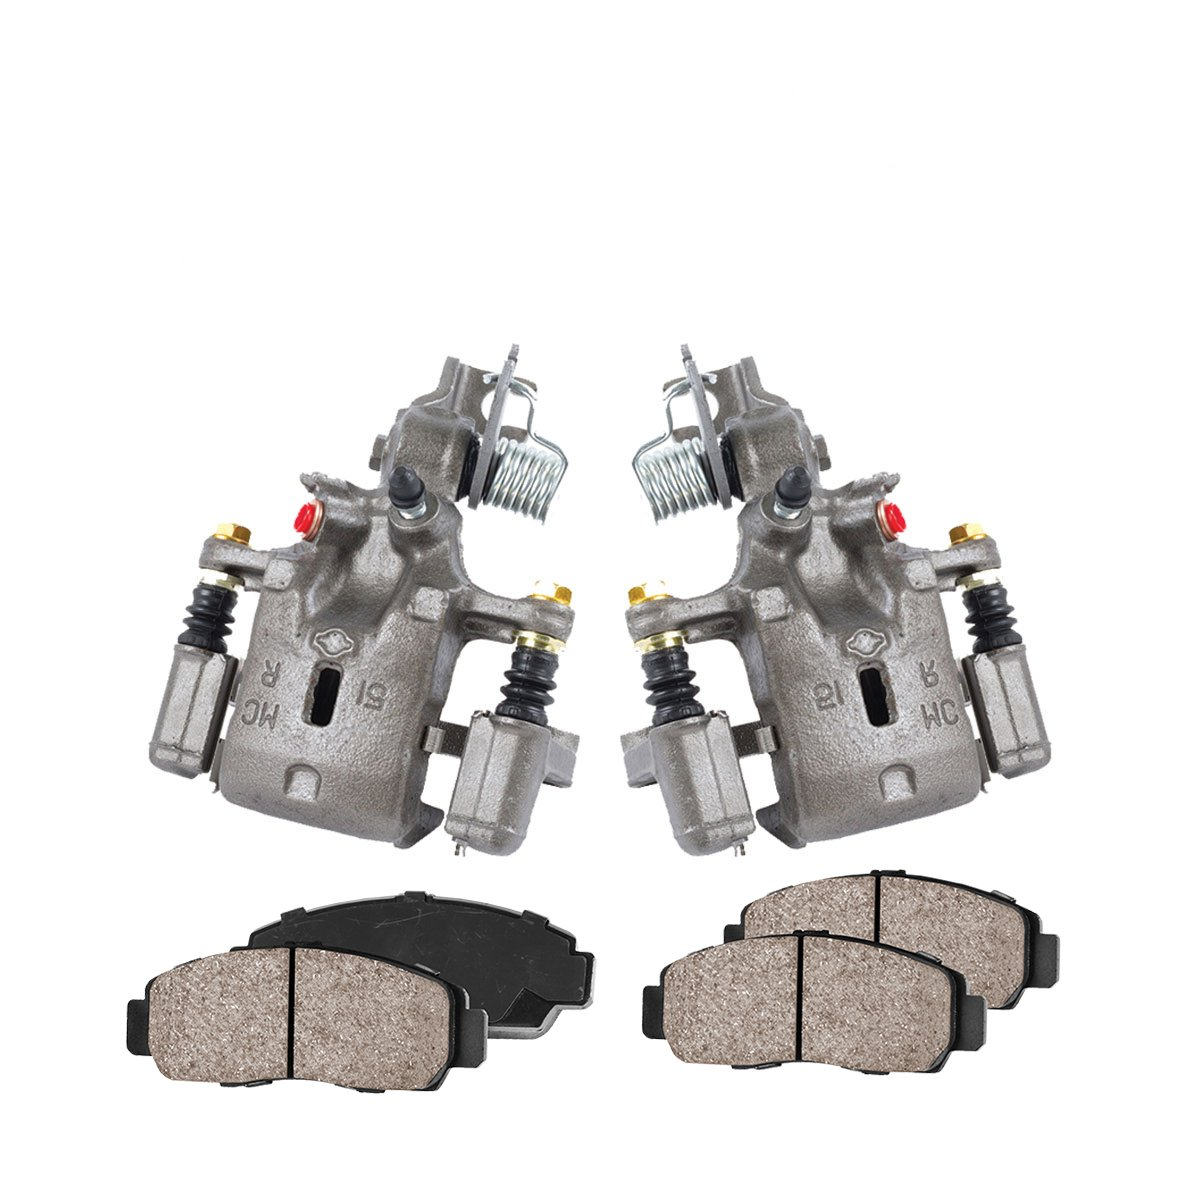 COEK00187 [2] REAR Premium Loaded OE Caliper Assembly Set + Quiet Low Dust Ceramic Brake Pads Callahan Brake Parts